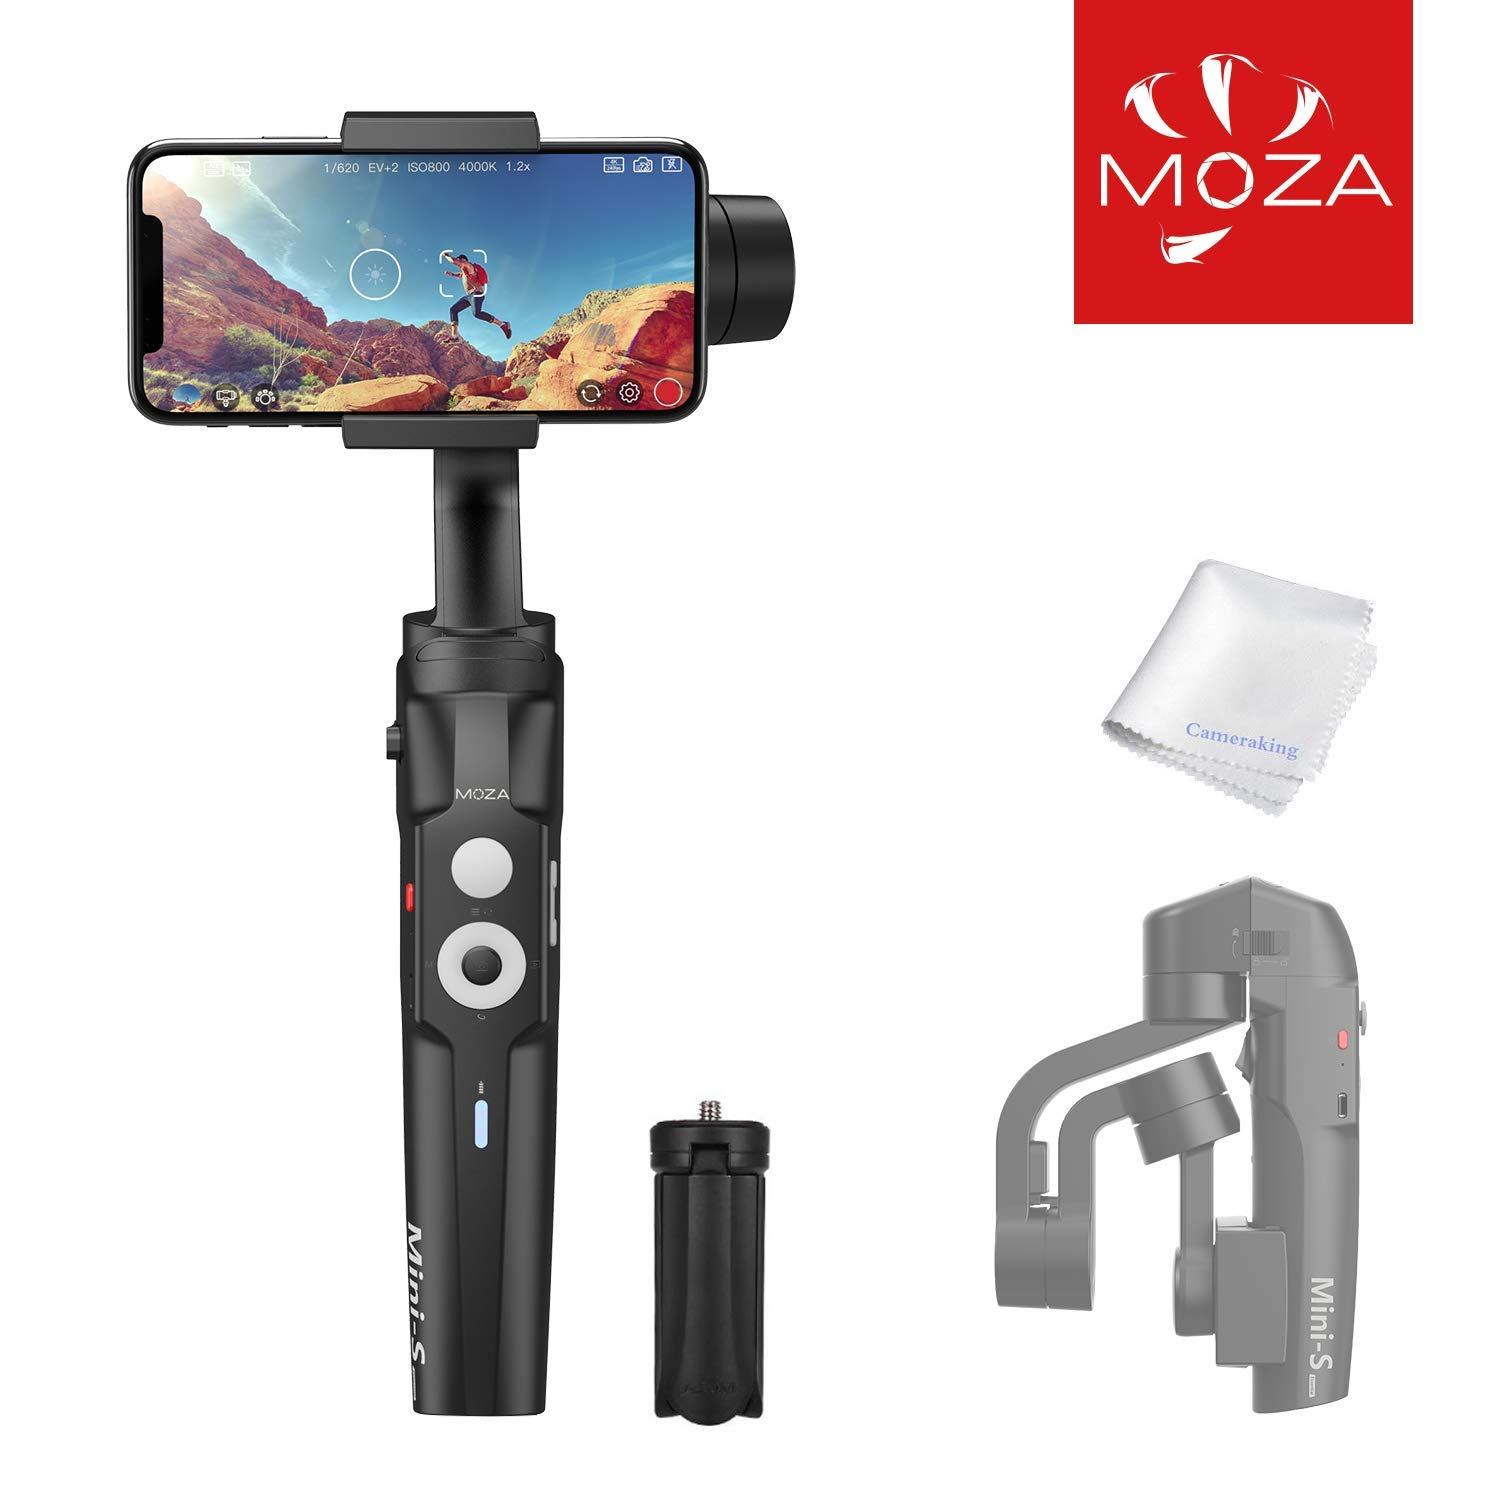 MOZA Mini-S 3-Axis Gimbal Stabilizer for Smartphone iPhone X XR XS Vlog Youtuber Live Video Record Foldable Extendable Gimbal with Timelapse Object Tracking Quick Platback Inception Mode by MOZA